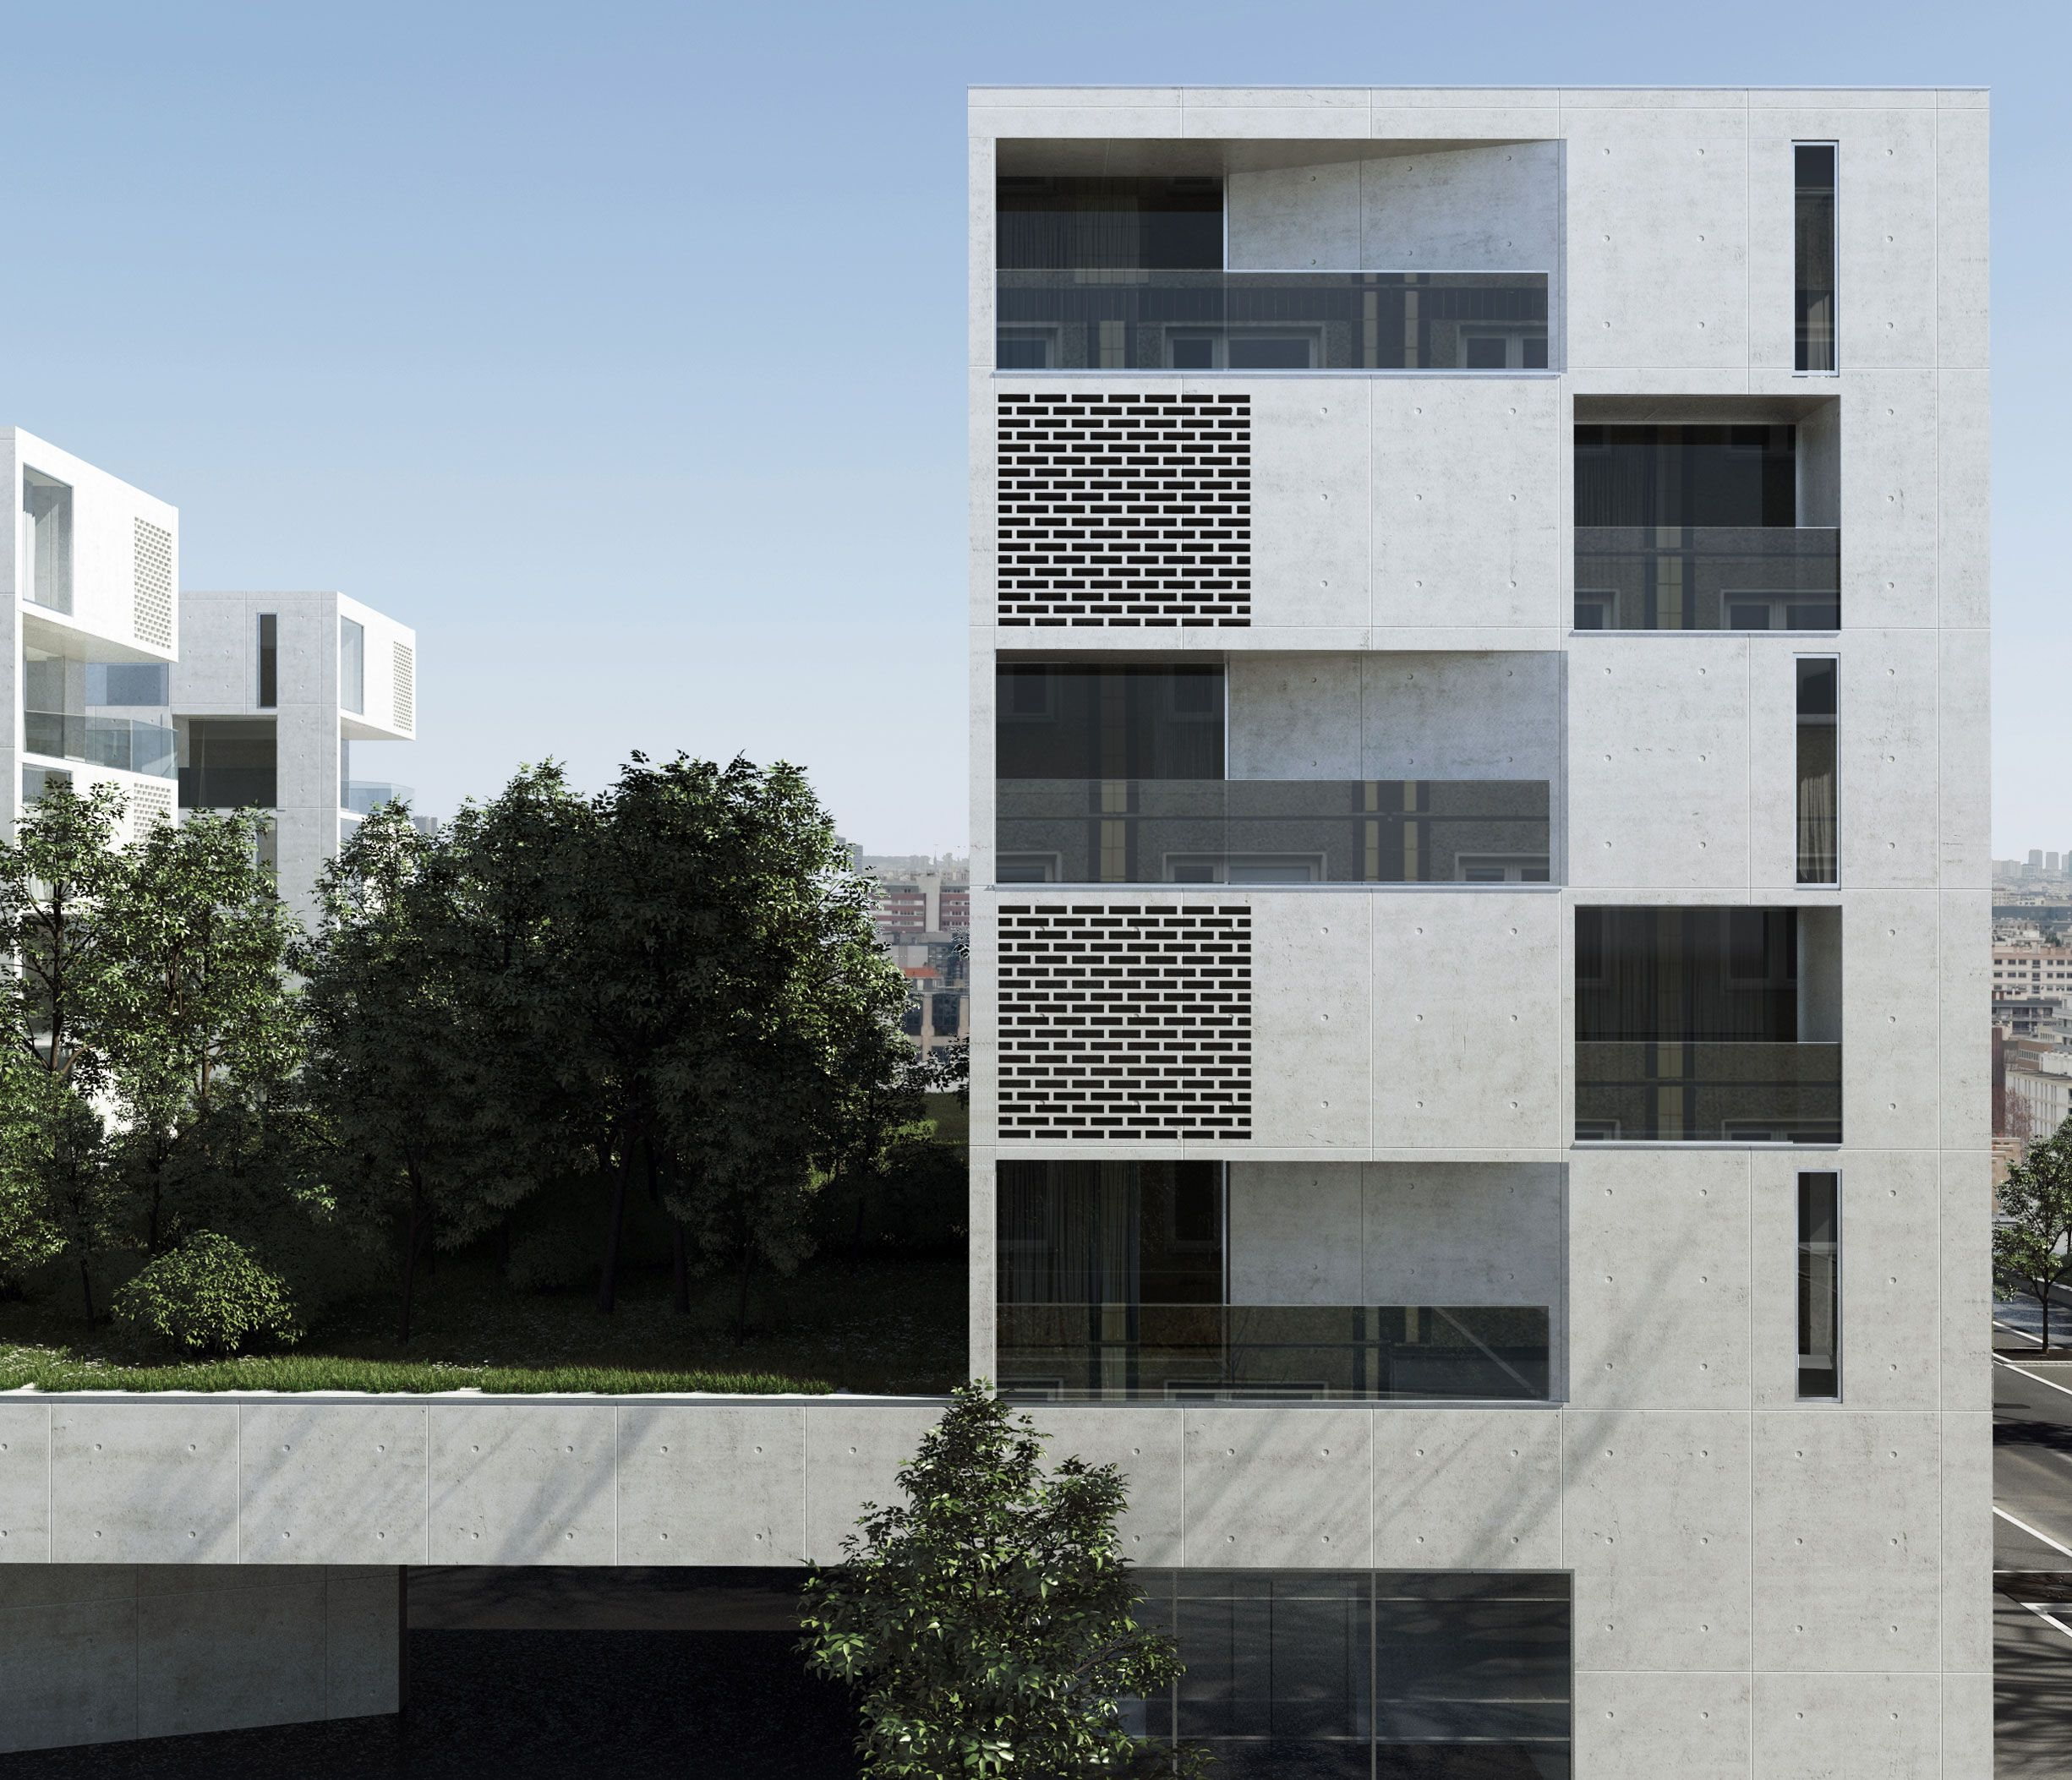 Aum architectes pierre minassian edouard minassian yves for Facade immeuble contemporain